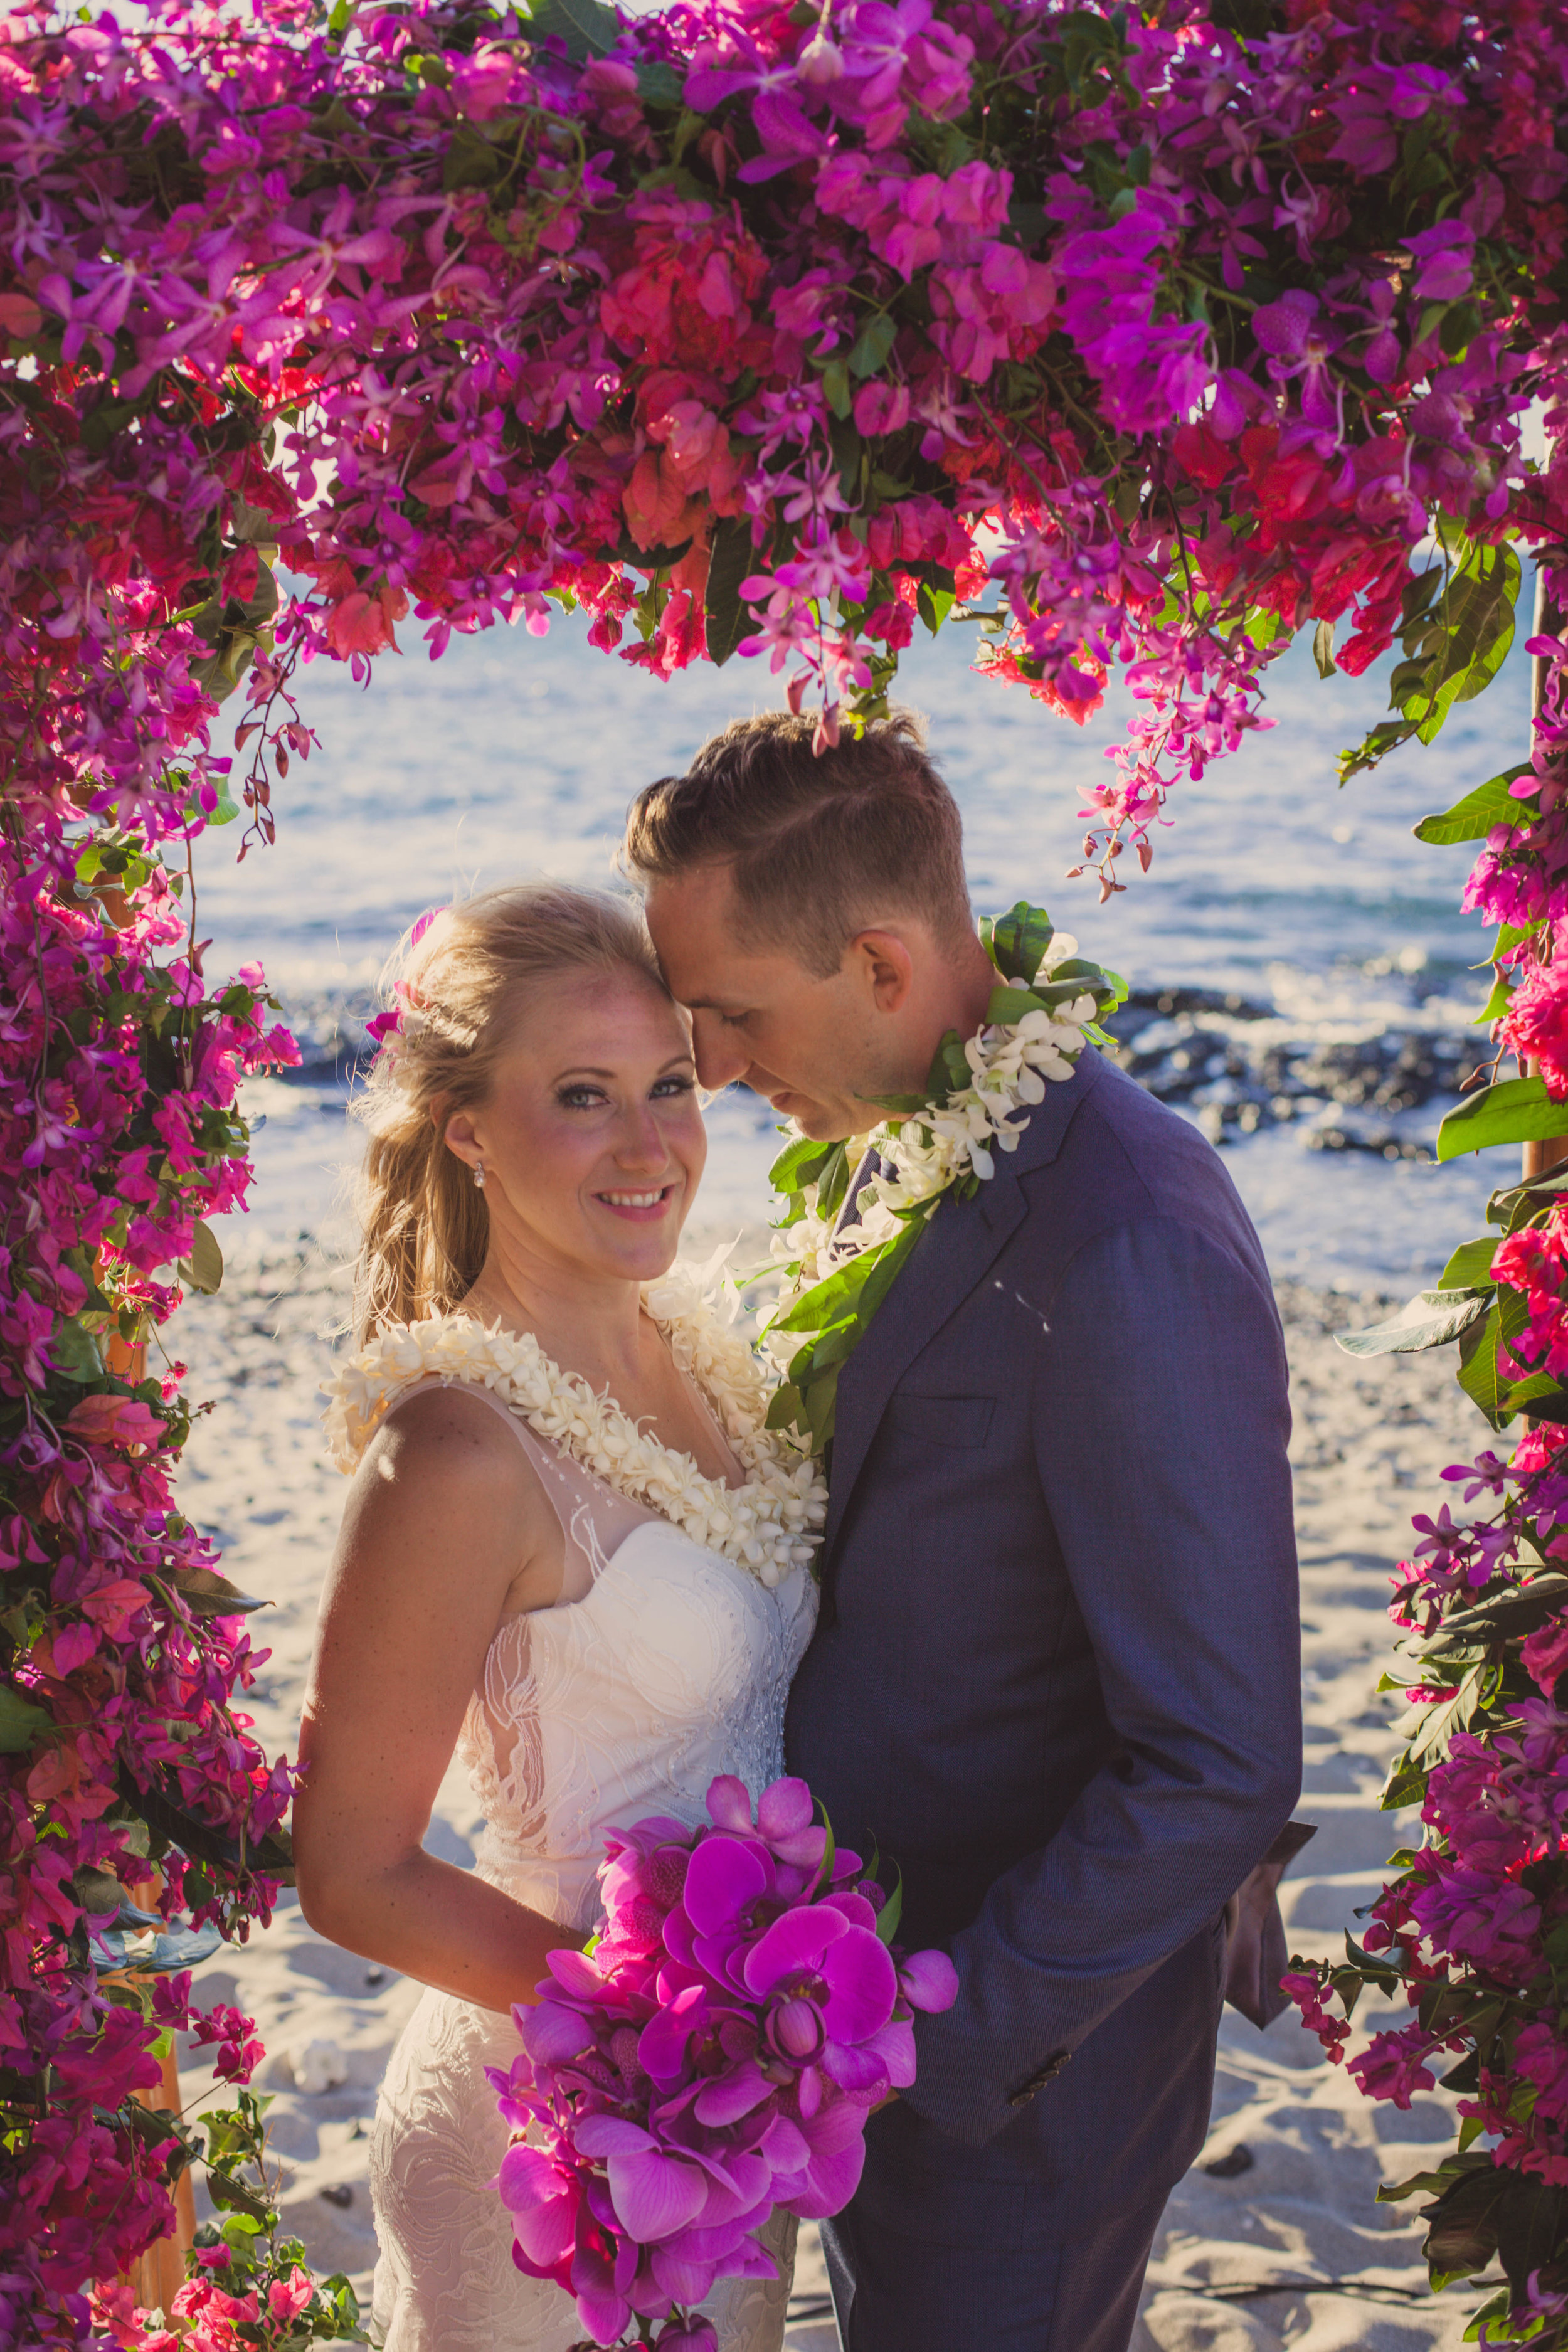 big island hawaii fairmont orchid beach wedding © kelilina photography 20170812180101-1.jpg